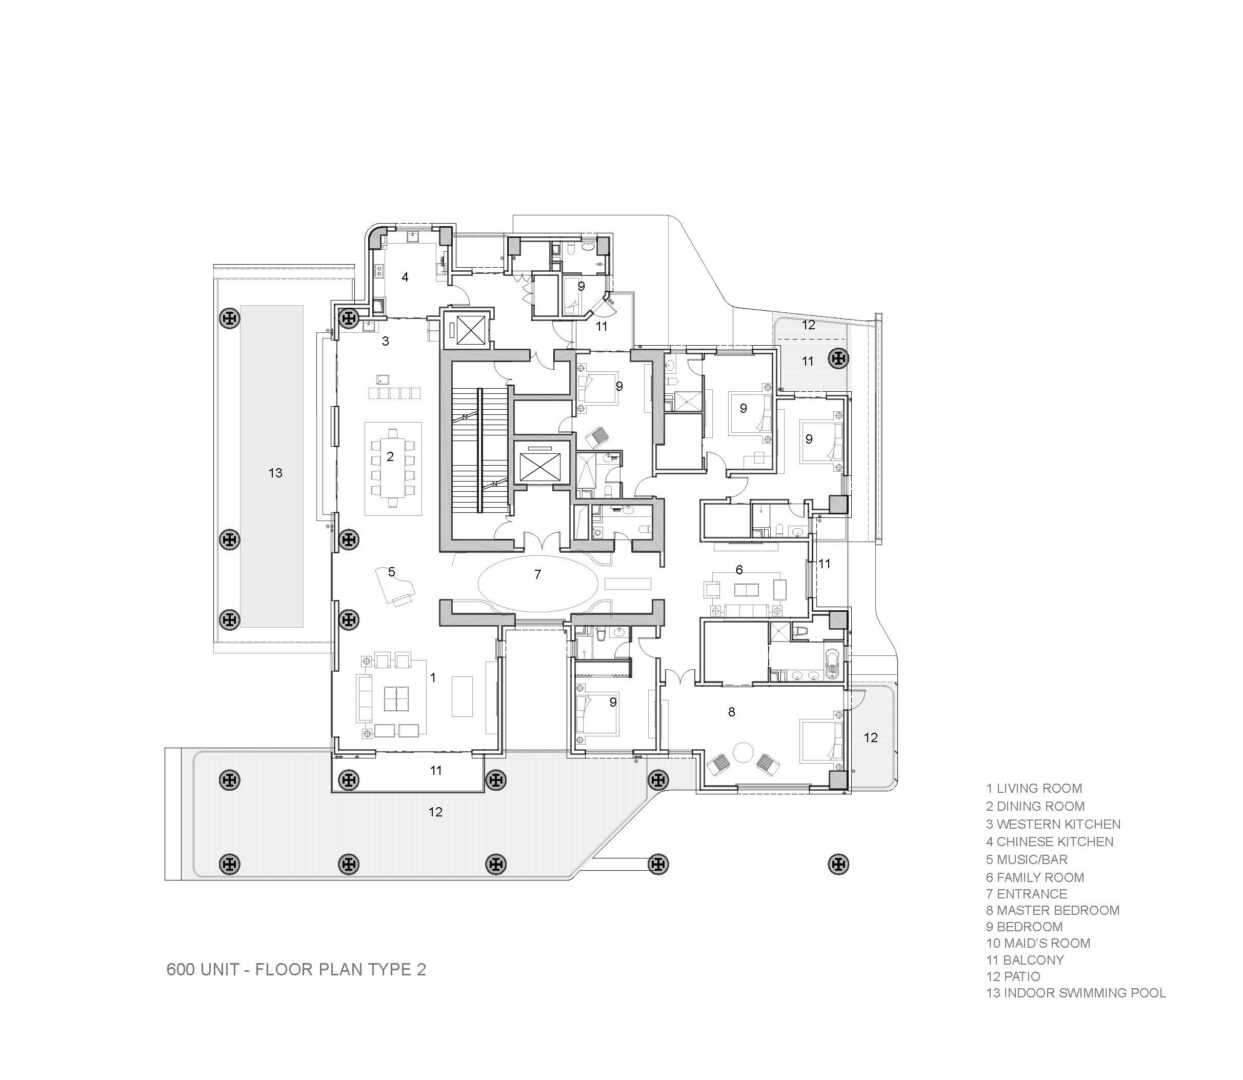 1212_floor-plan_600-unit-type-2